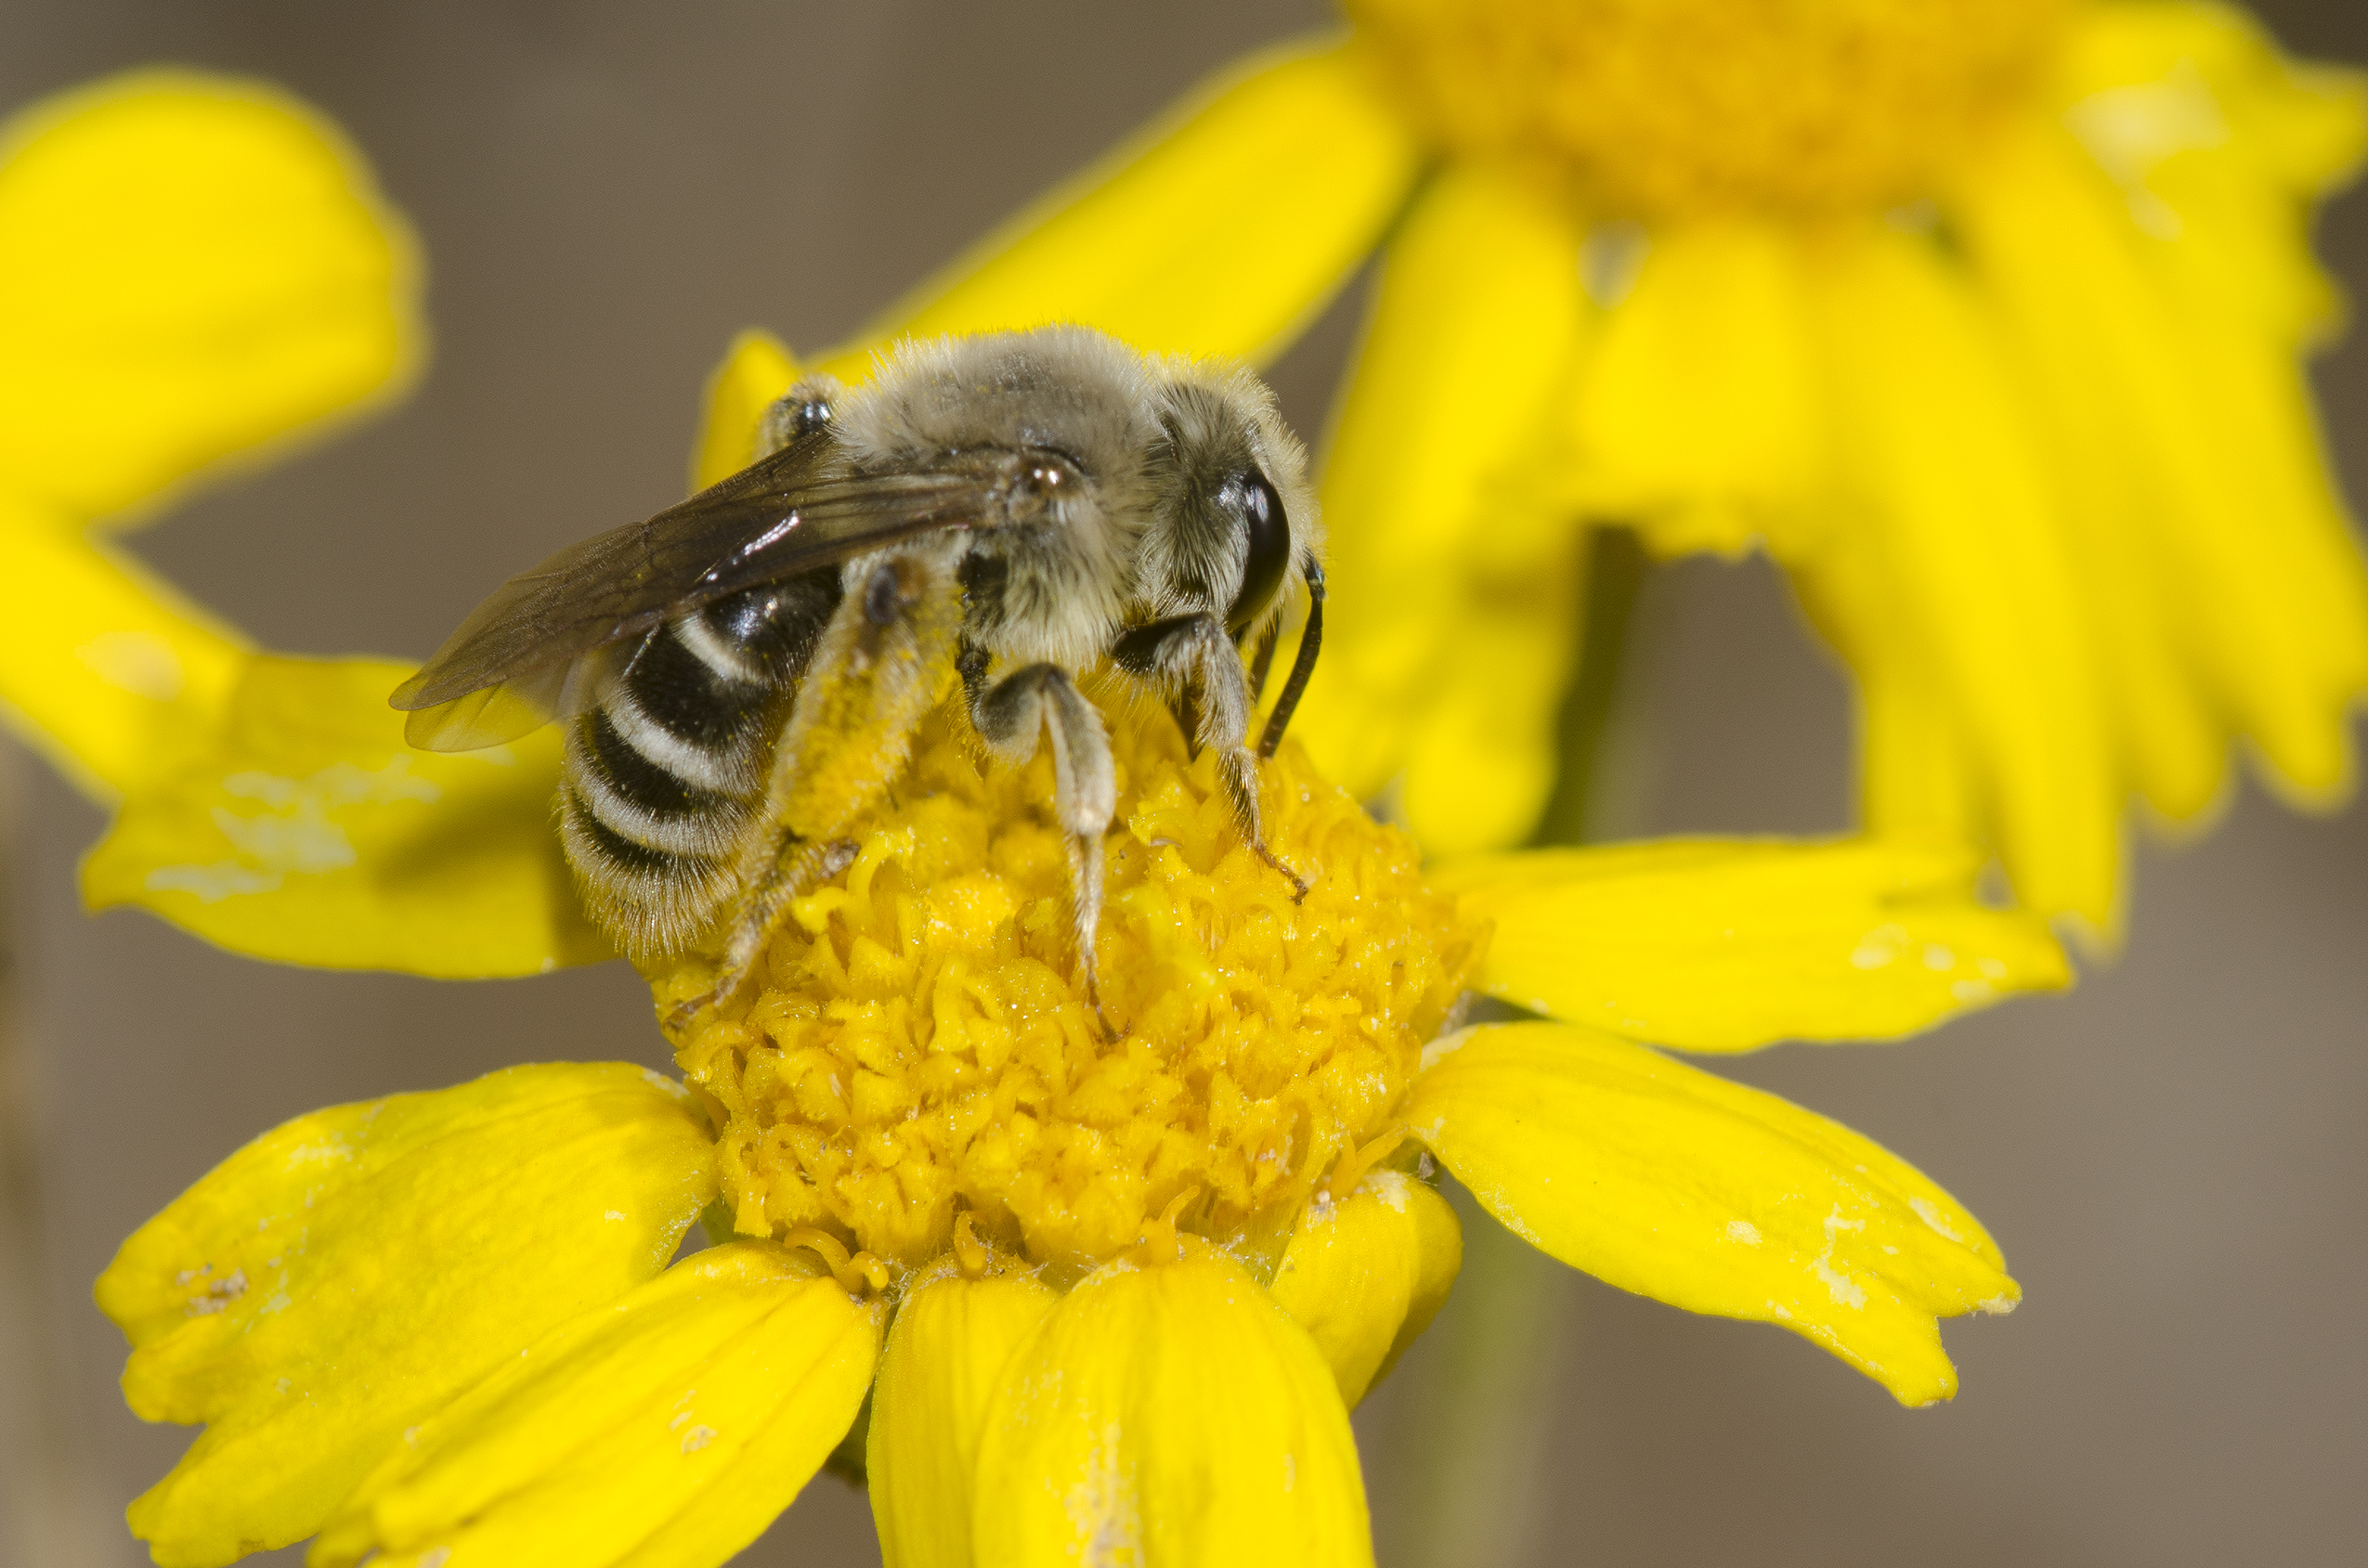 Mining bee drinks nectar from yellow flower